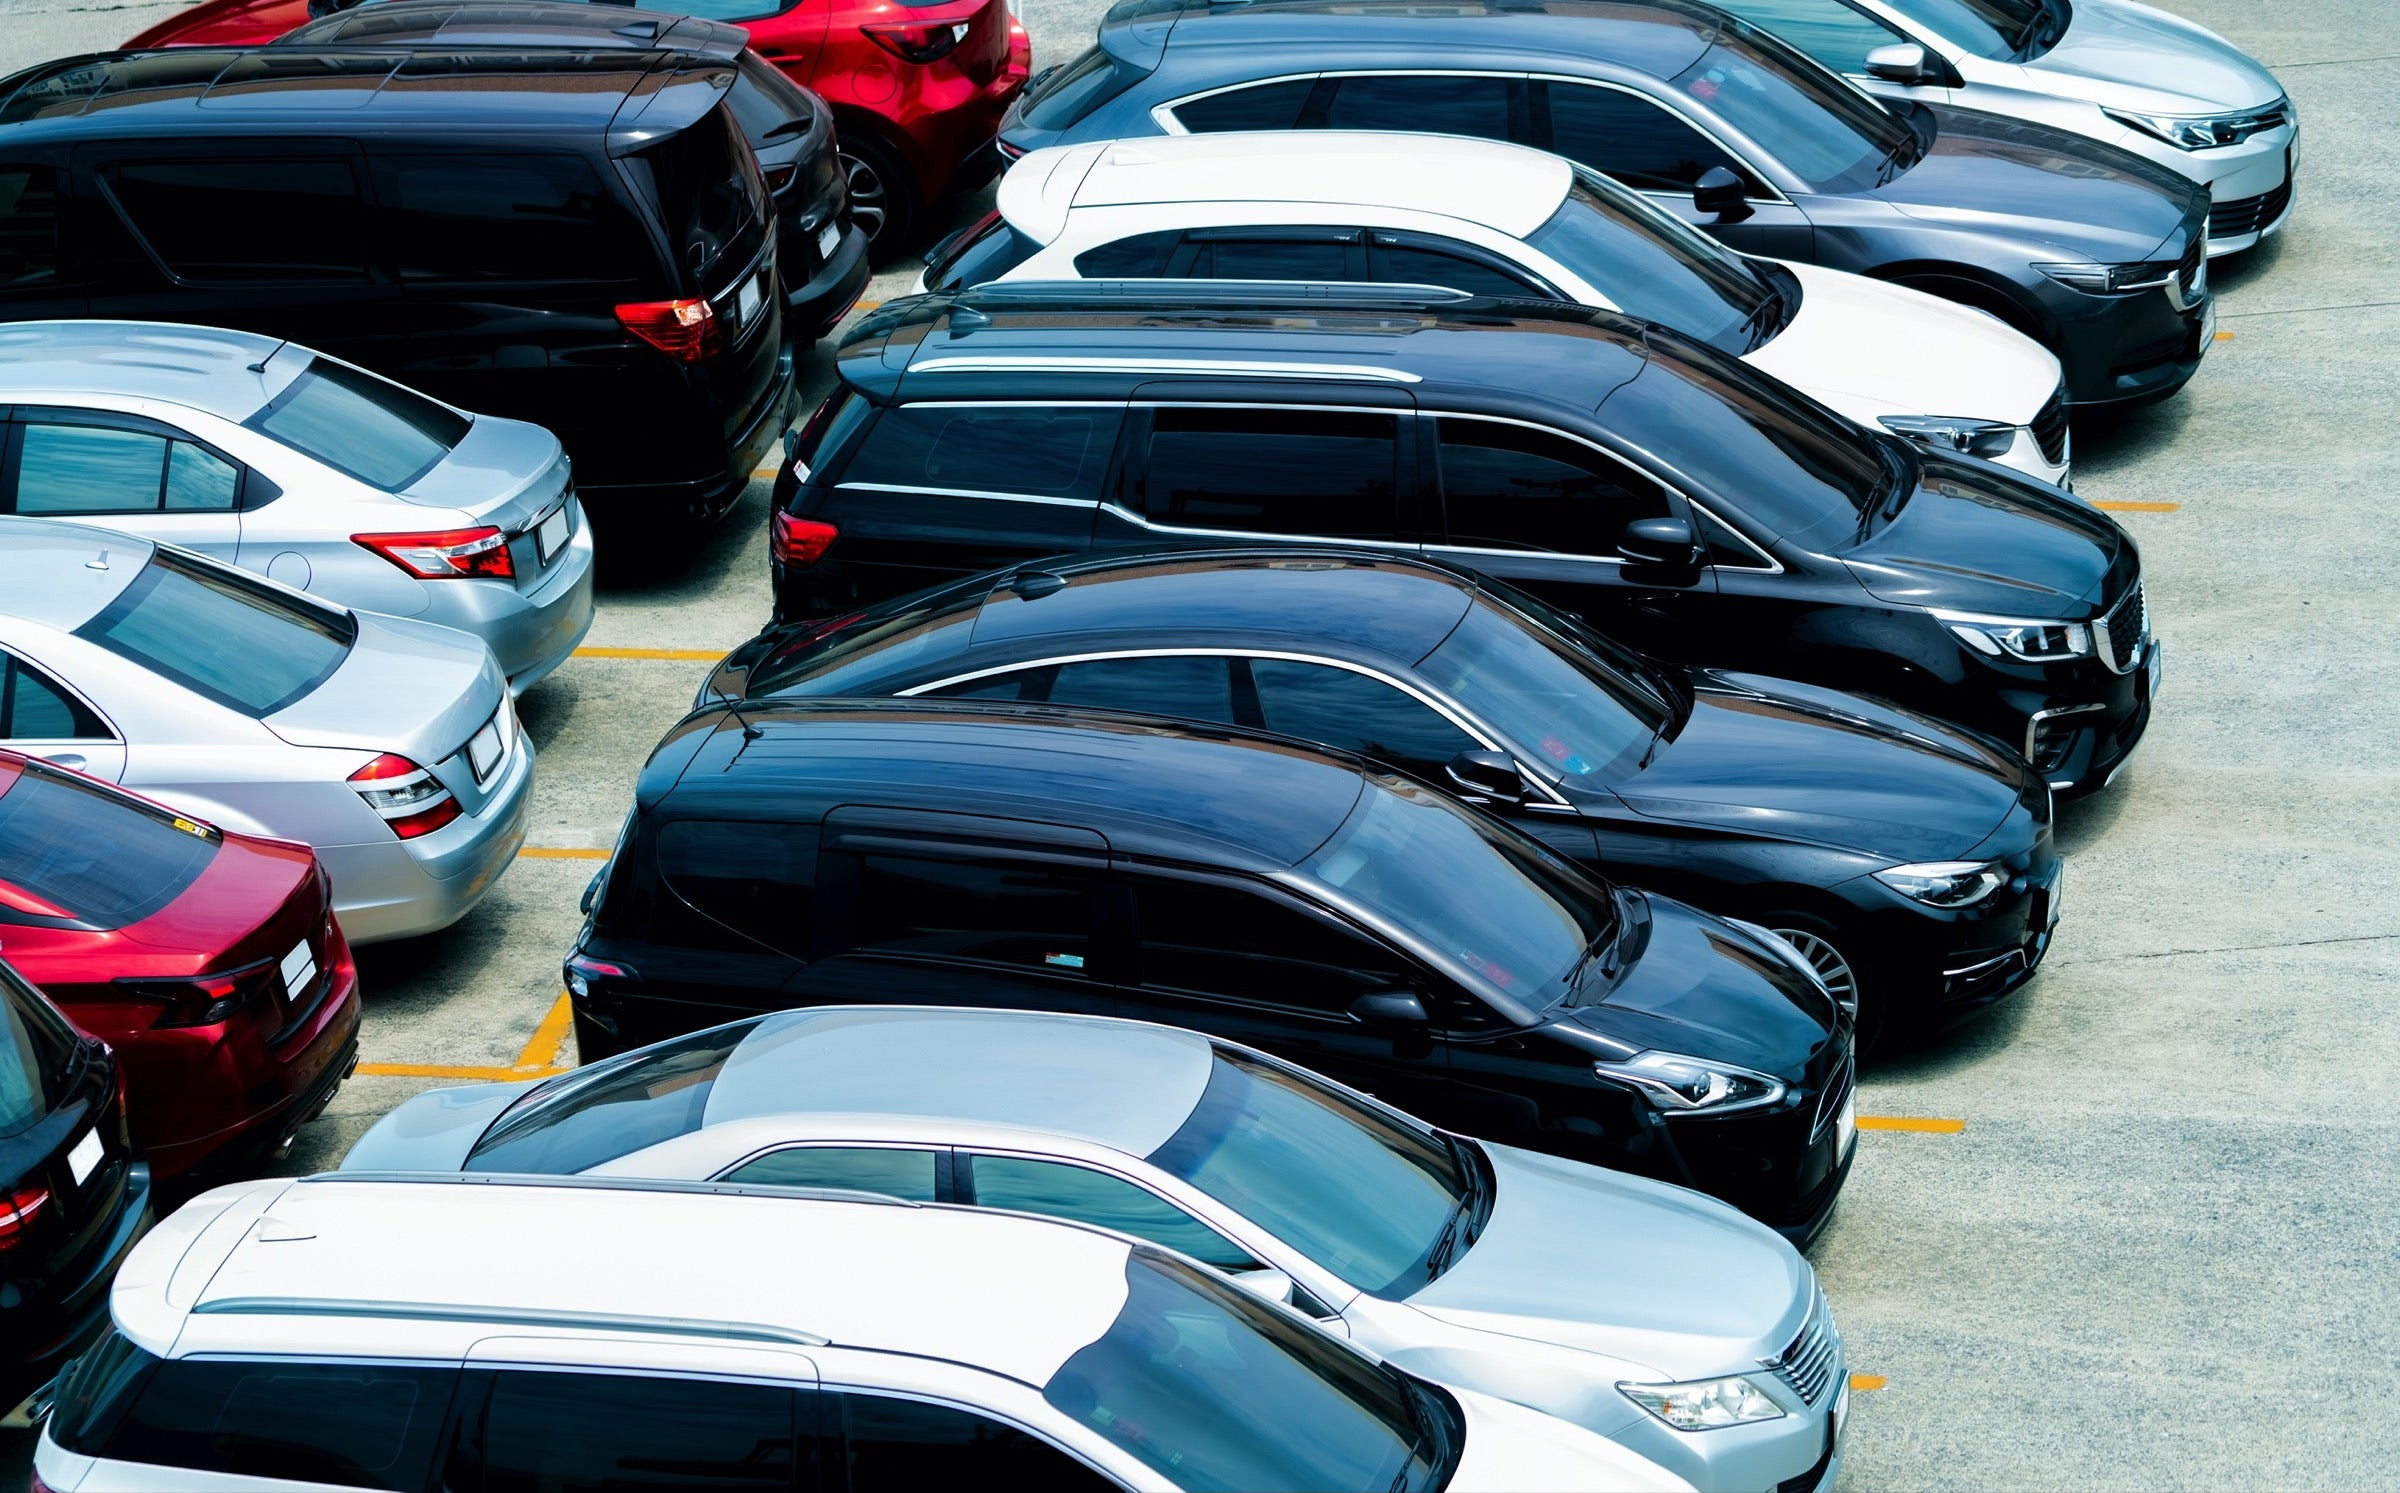 Rental-cars-parked-in-a-lot